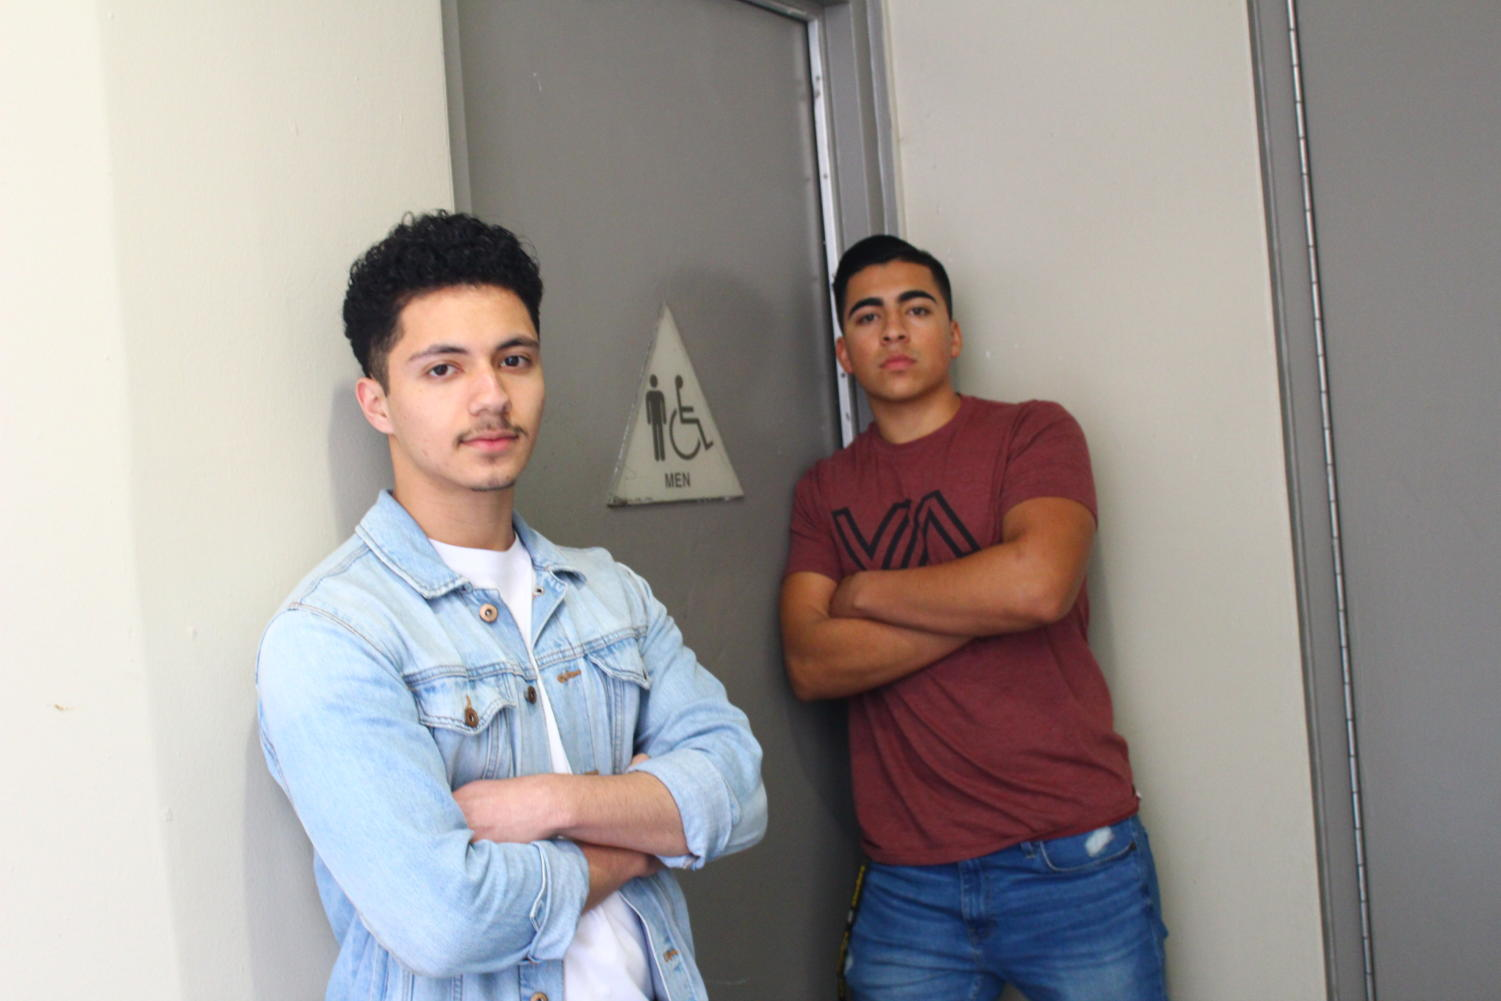 From left: guest contributors Joshua Garcia and Jesse Cendejas in front of one of the many restrooms locked during class time. Photo taken March 26, 2019 during 5th period.